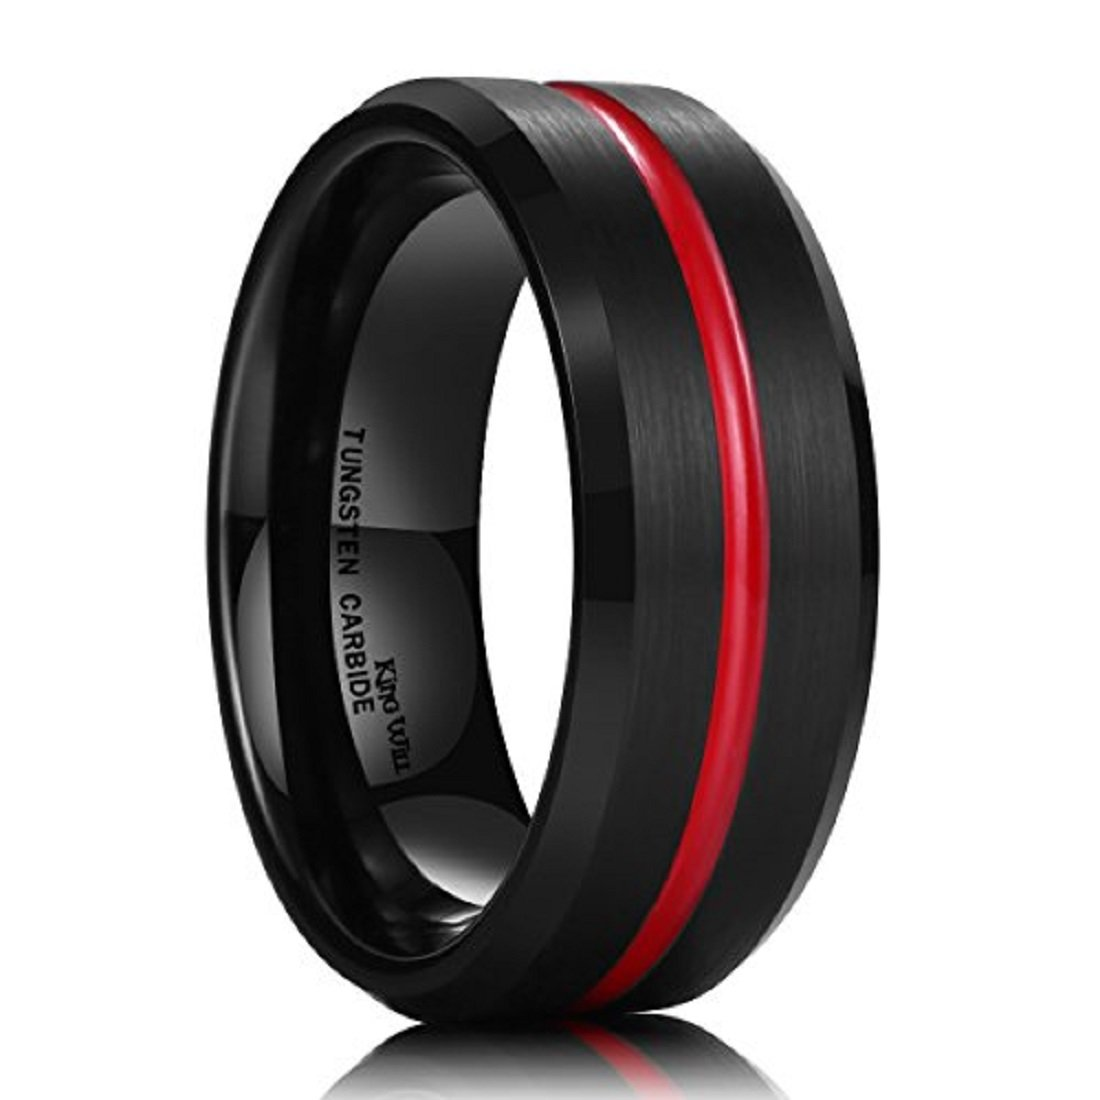 King Will LOOP Thin Red Groove Black Brushed Tungsten Carbide Wedding Band Ring Comfort Fit OY-R174